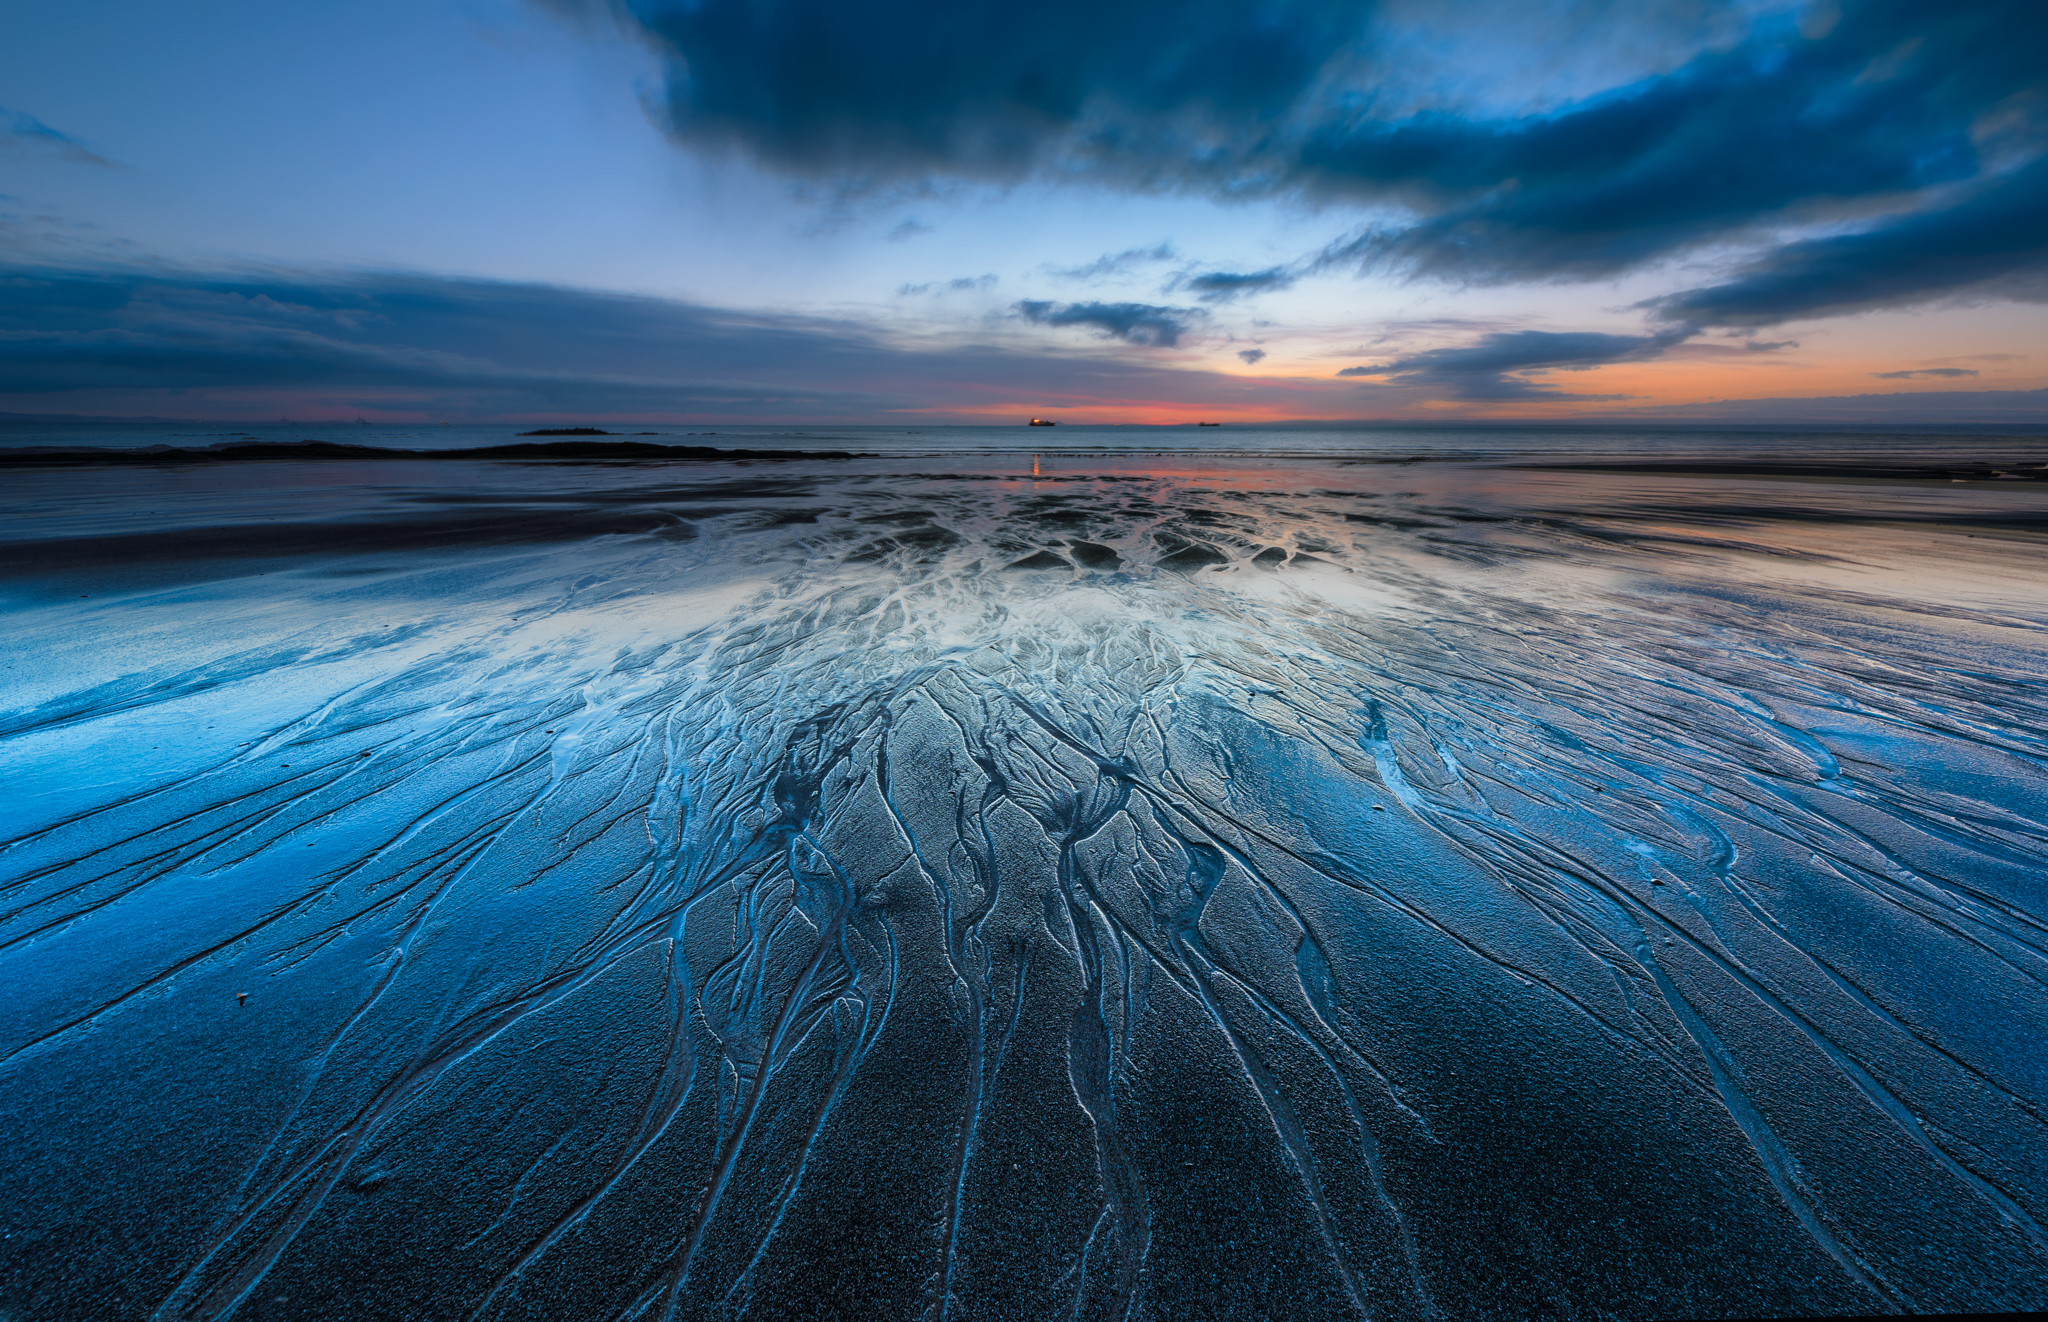 Seafield Beach, Kirkcaldy during Blue Hour